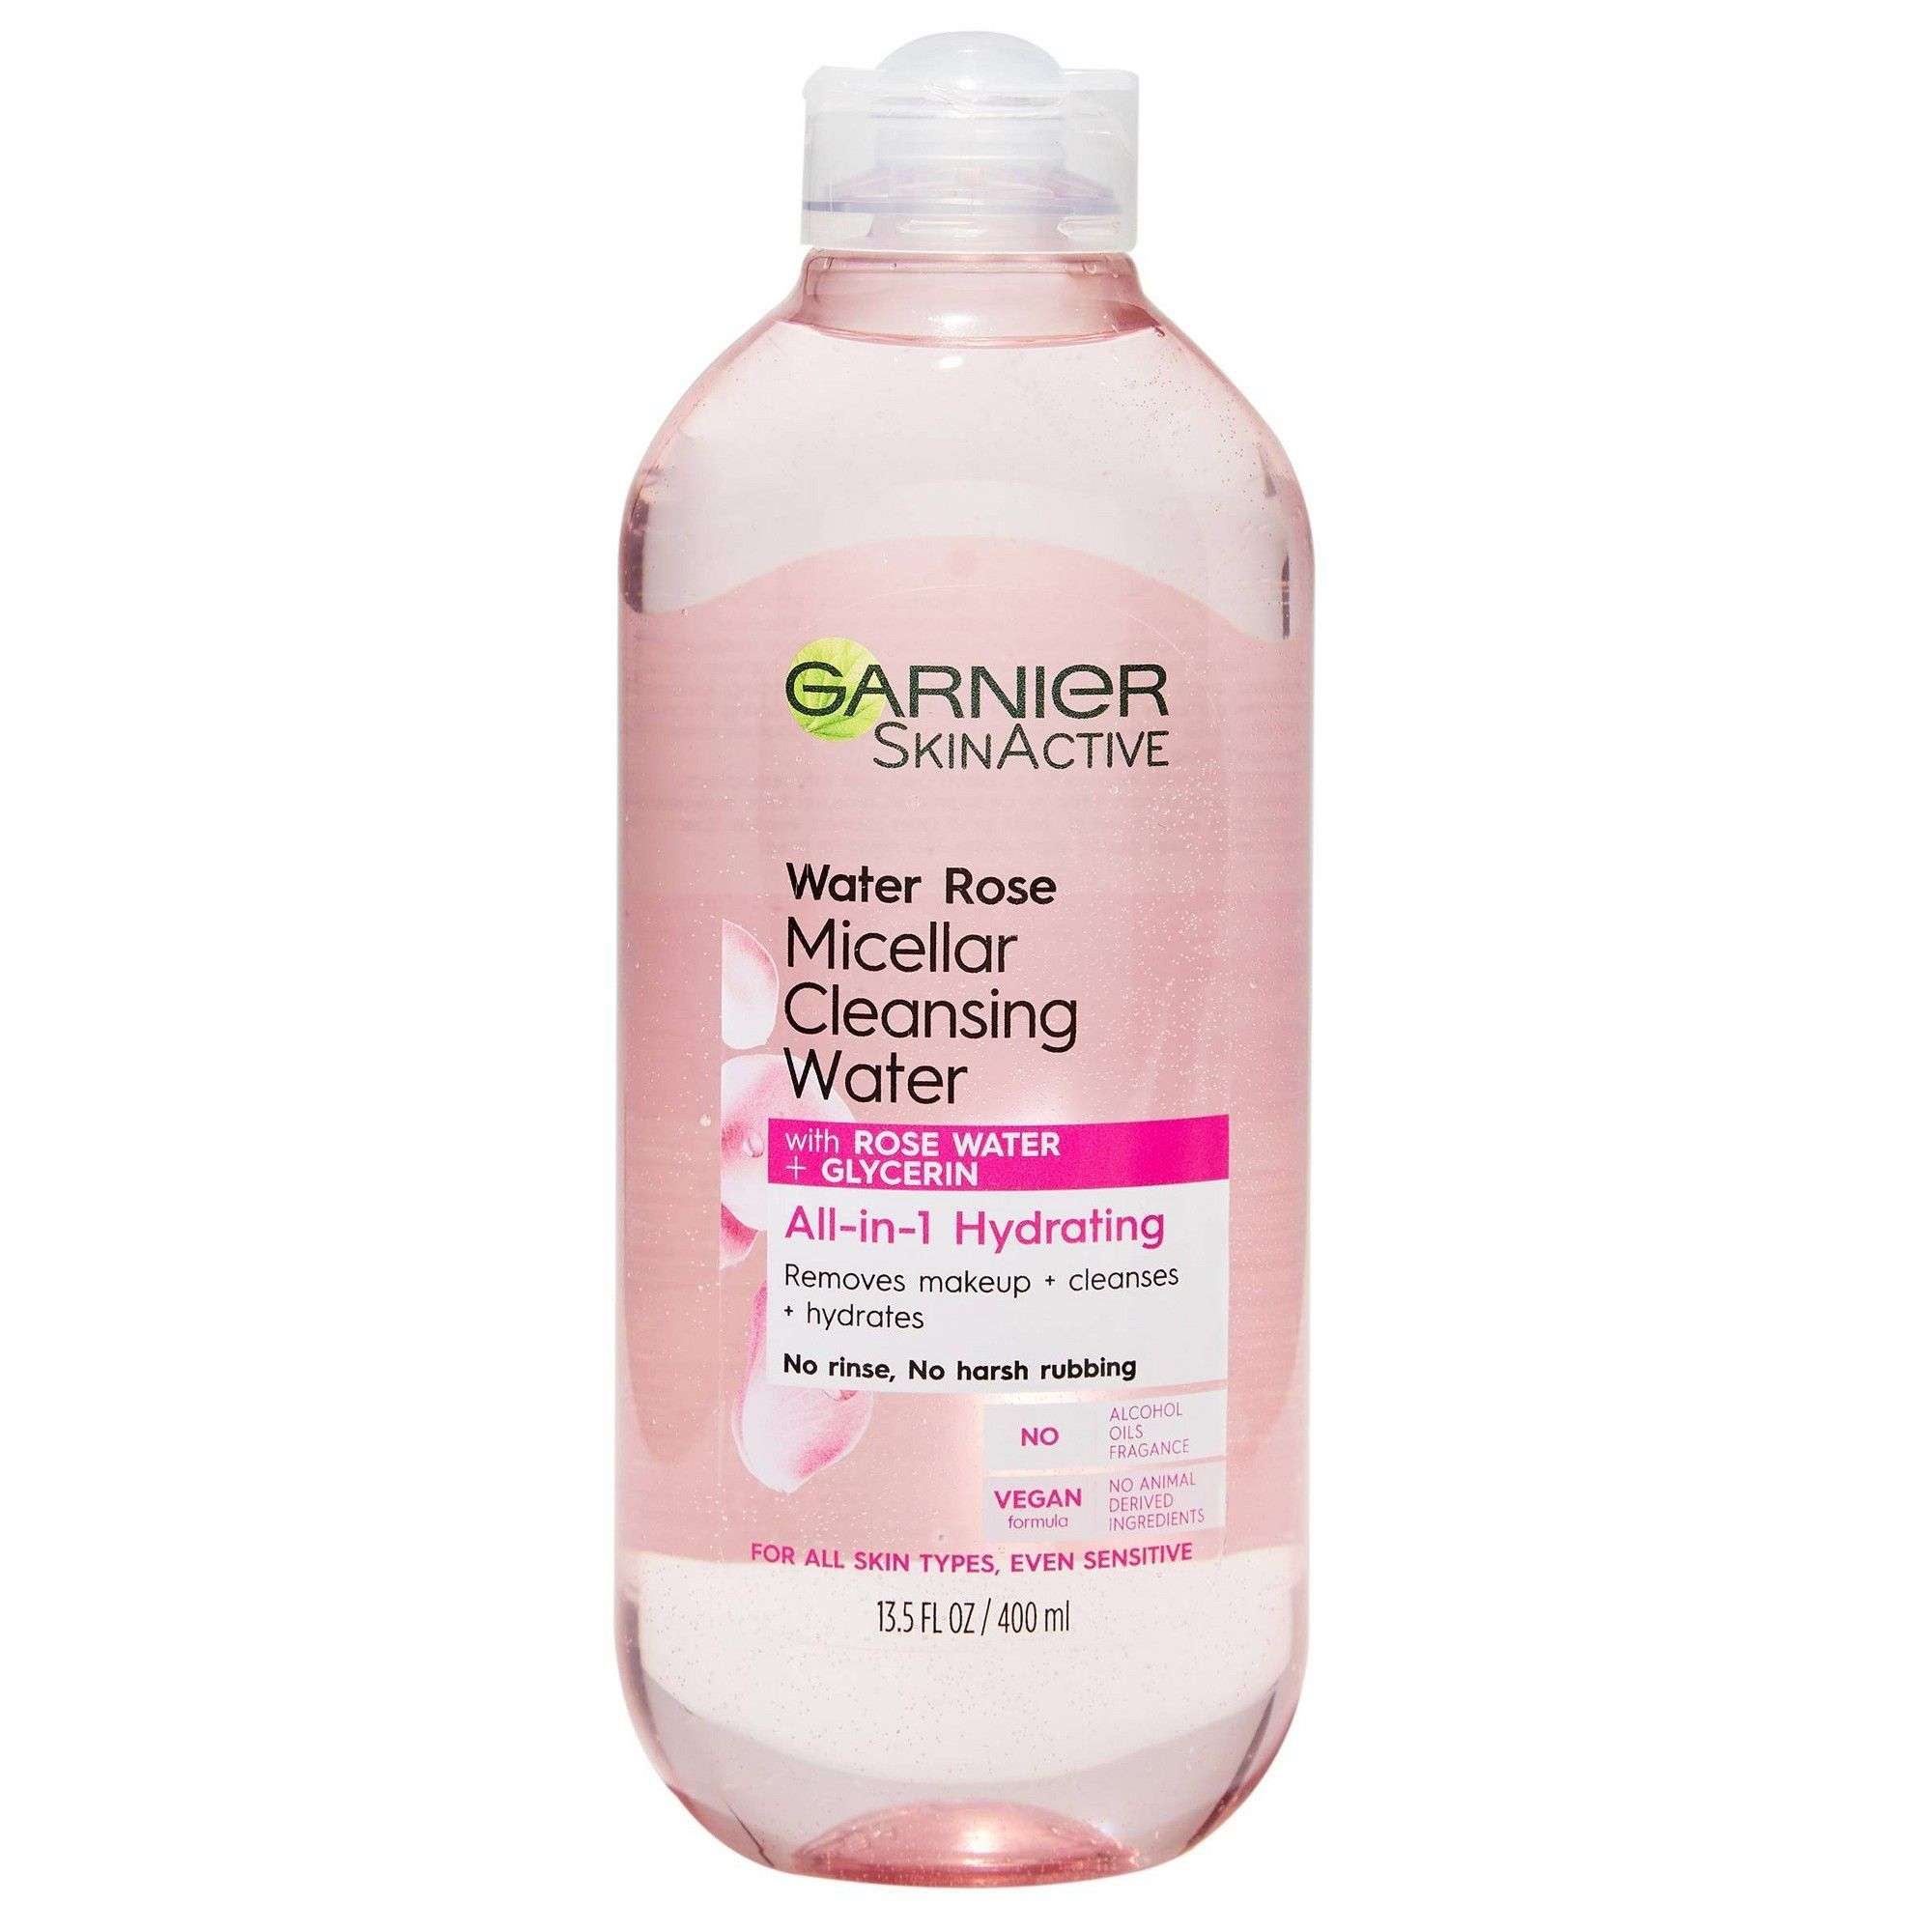 Garnier SkinActive Water Rose Micellar Cleansing Water